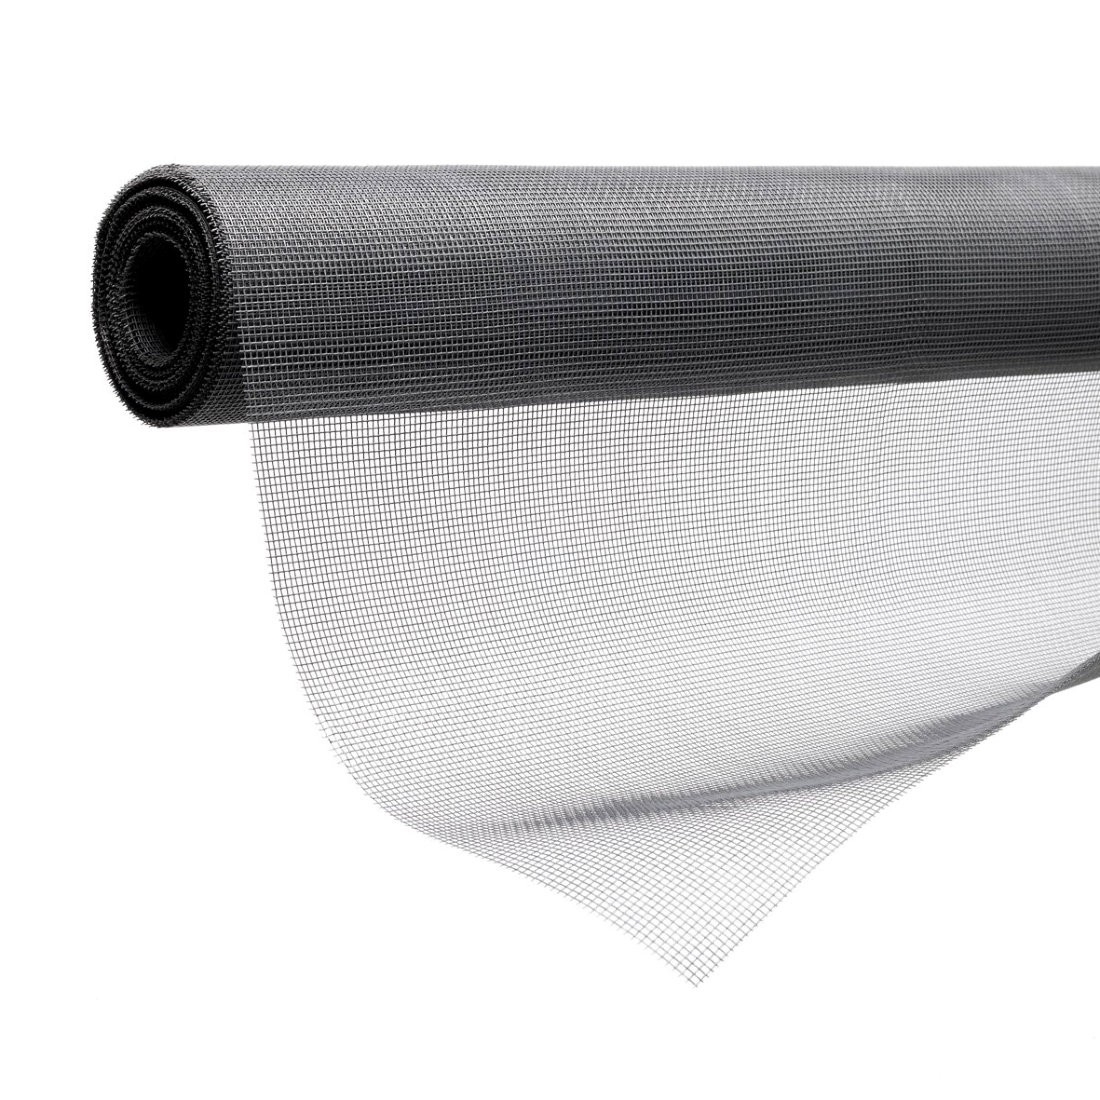 PVC Coated Fibreglass Insect Mesh Netting - 30m Roll